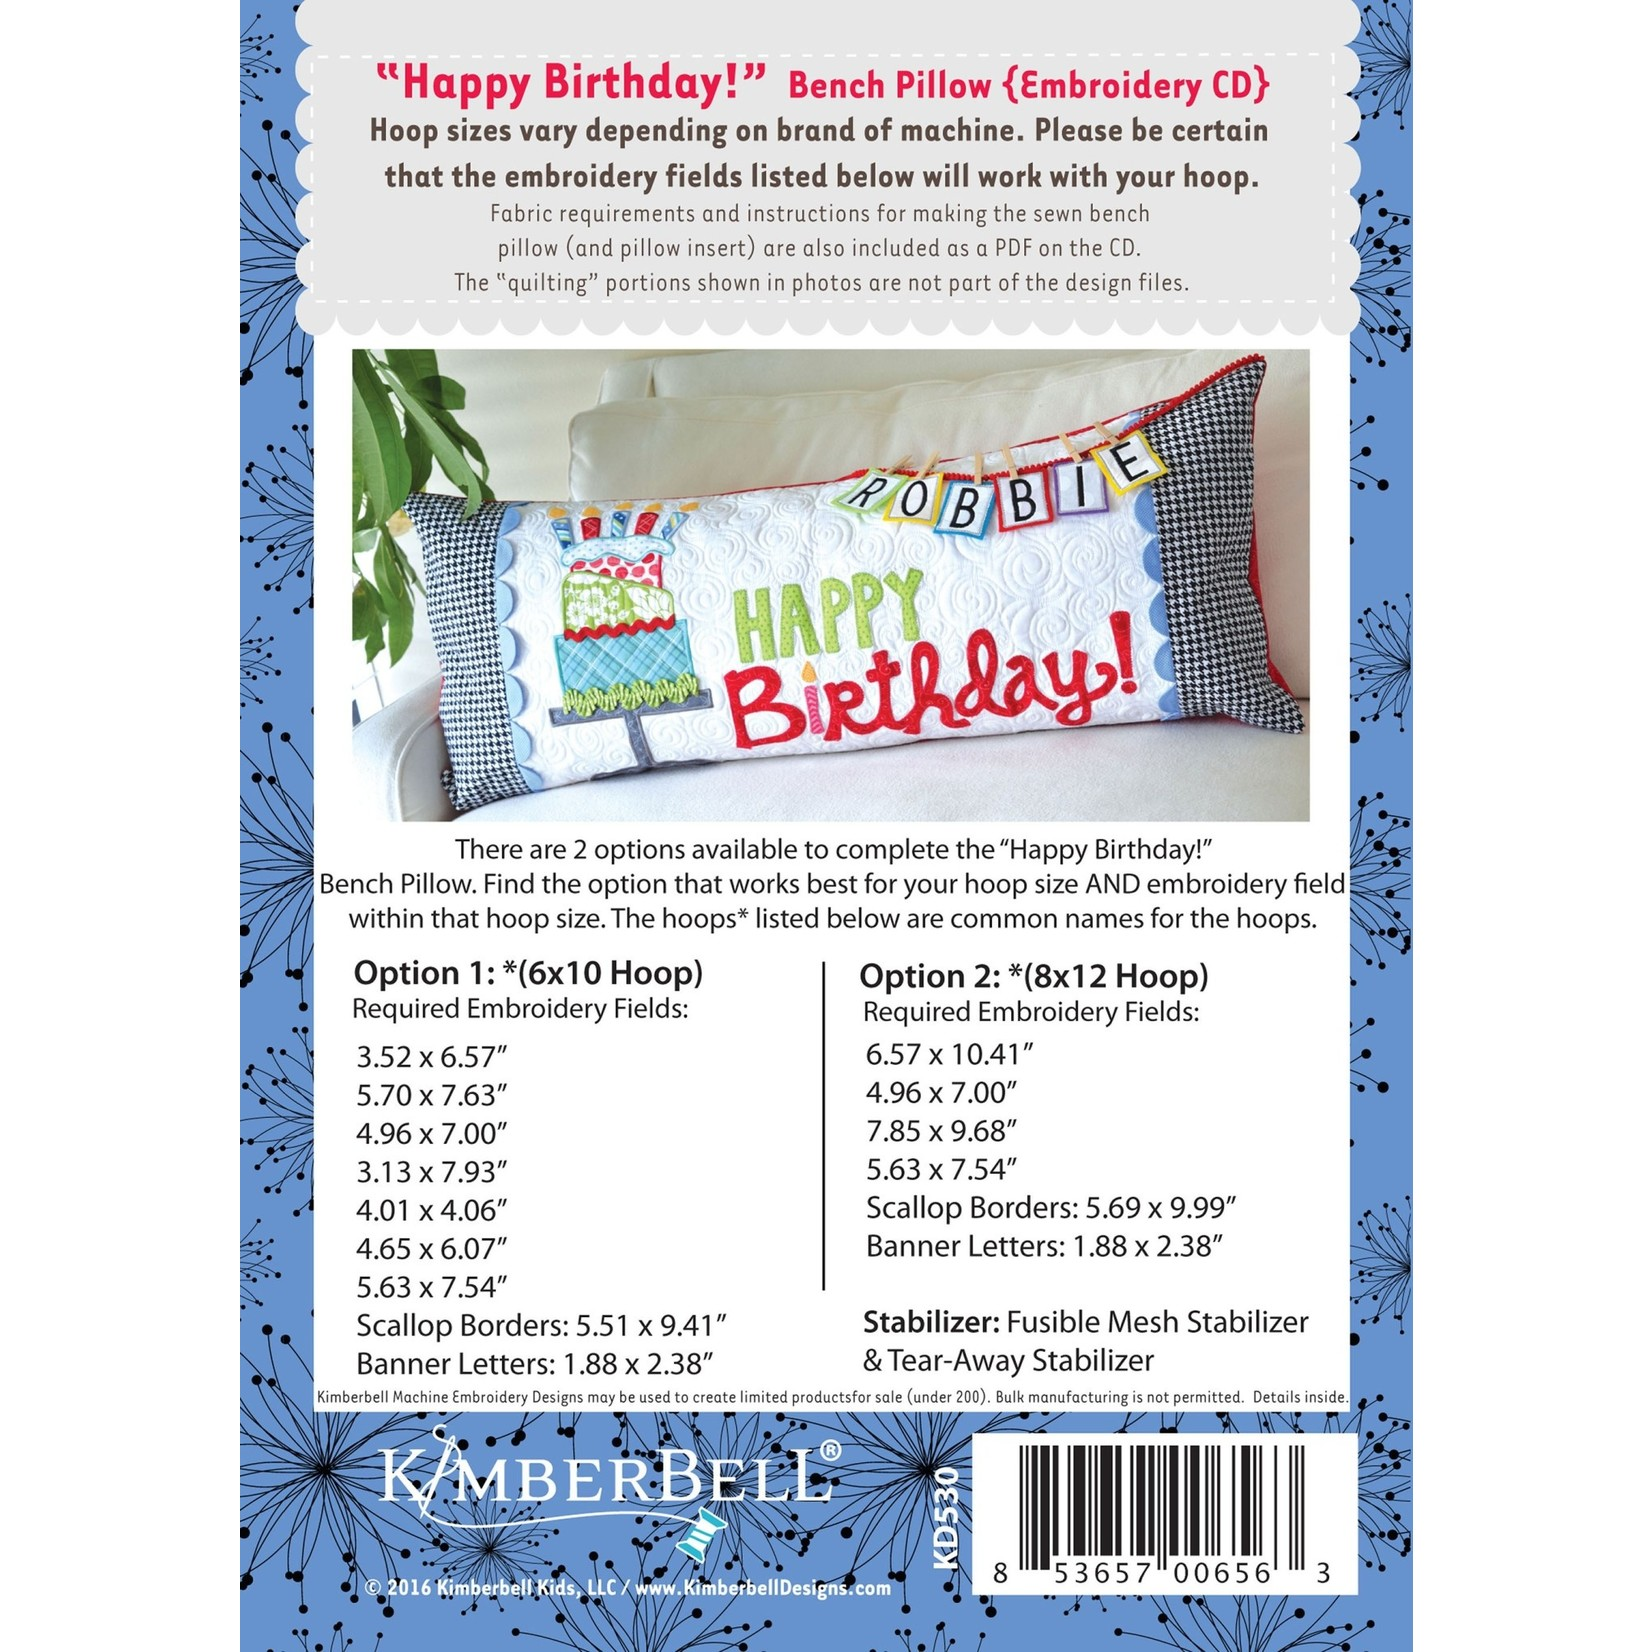 KIMBERBELL DESIGNS Happy Birthday! Bench Pillow Machine Embroidery CD